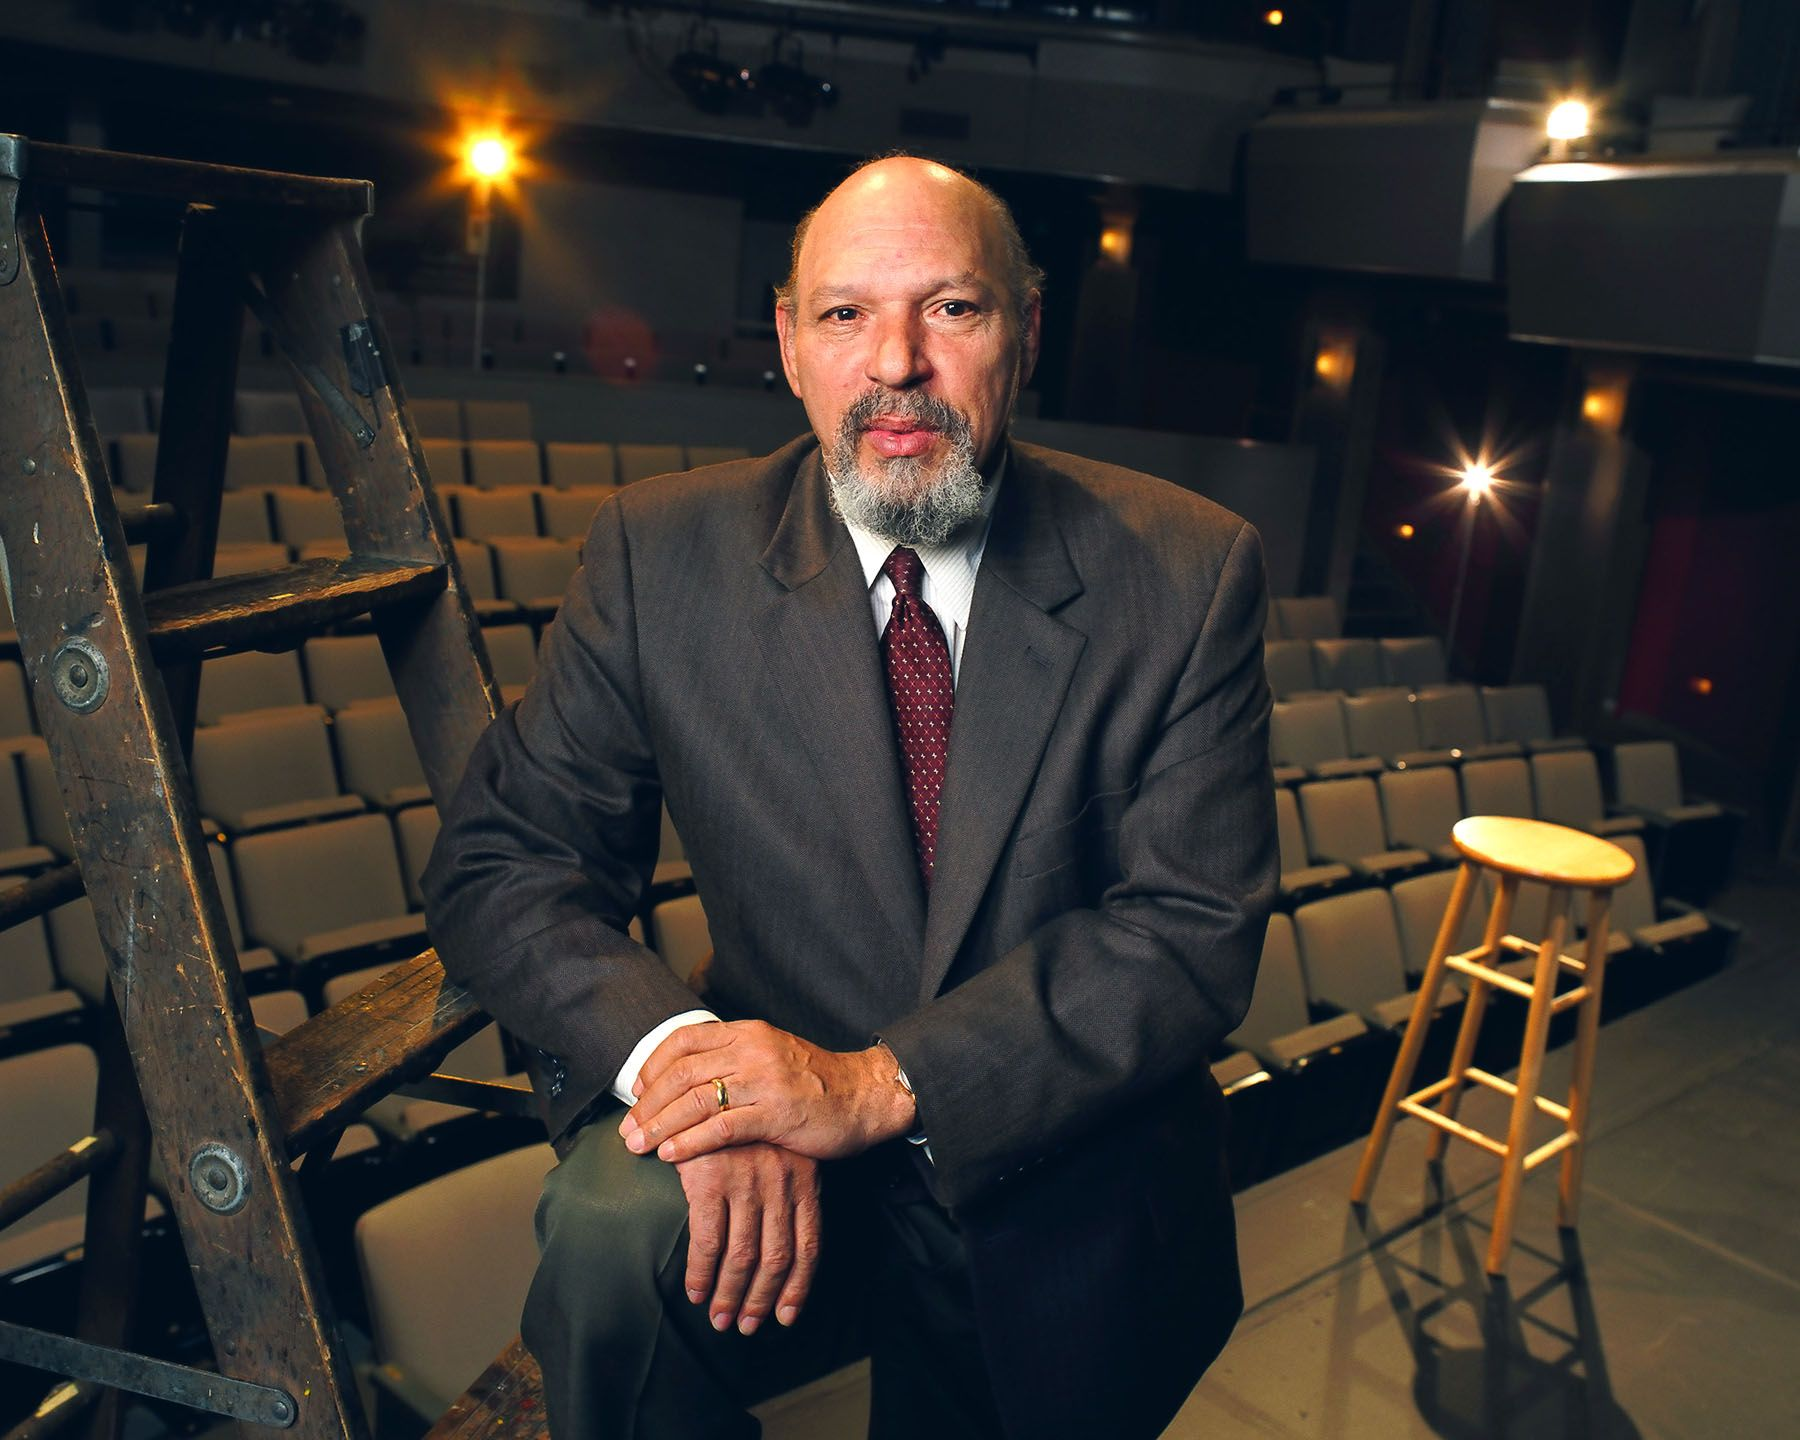 playwright wilson wins pulitzer prize playwright 1990 playwright wilson wins pulitzer prize playwright wilson won his second pulitzer prize